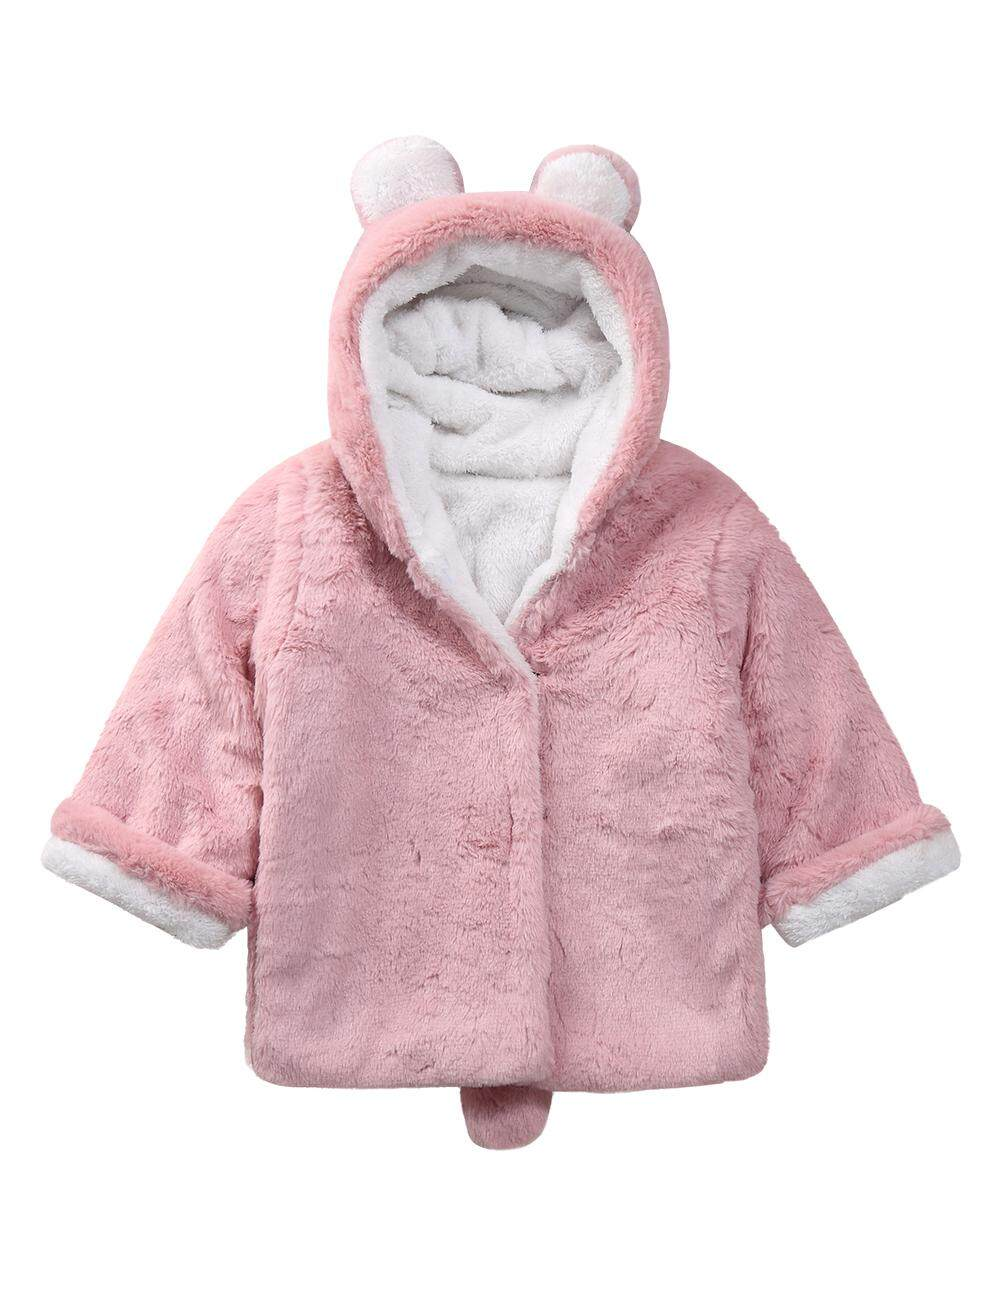 44653a6684f9a YZ Children Baby Girls Winter Jackets Warm Plush Fleece Coat Rabbit Ear  Hooded Outerwear Kids Jacket